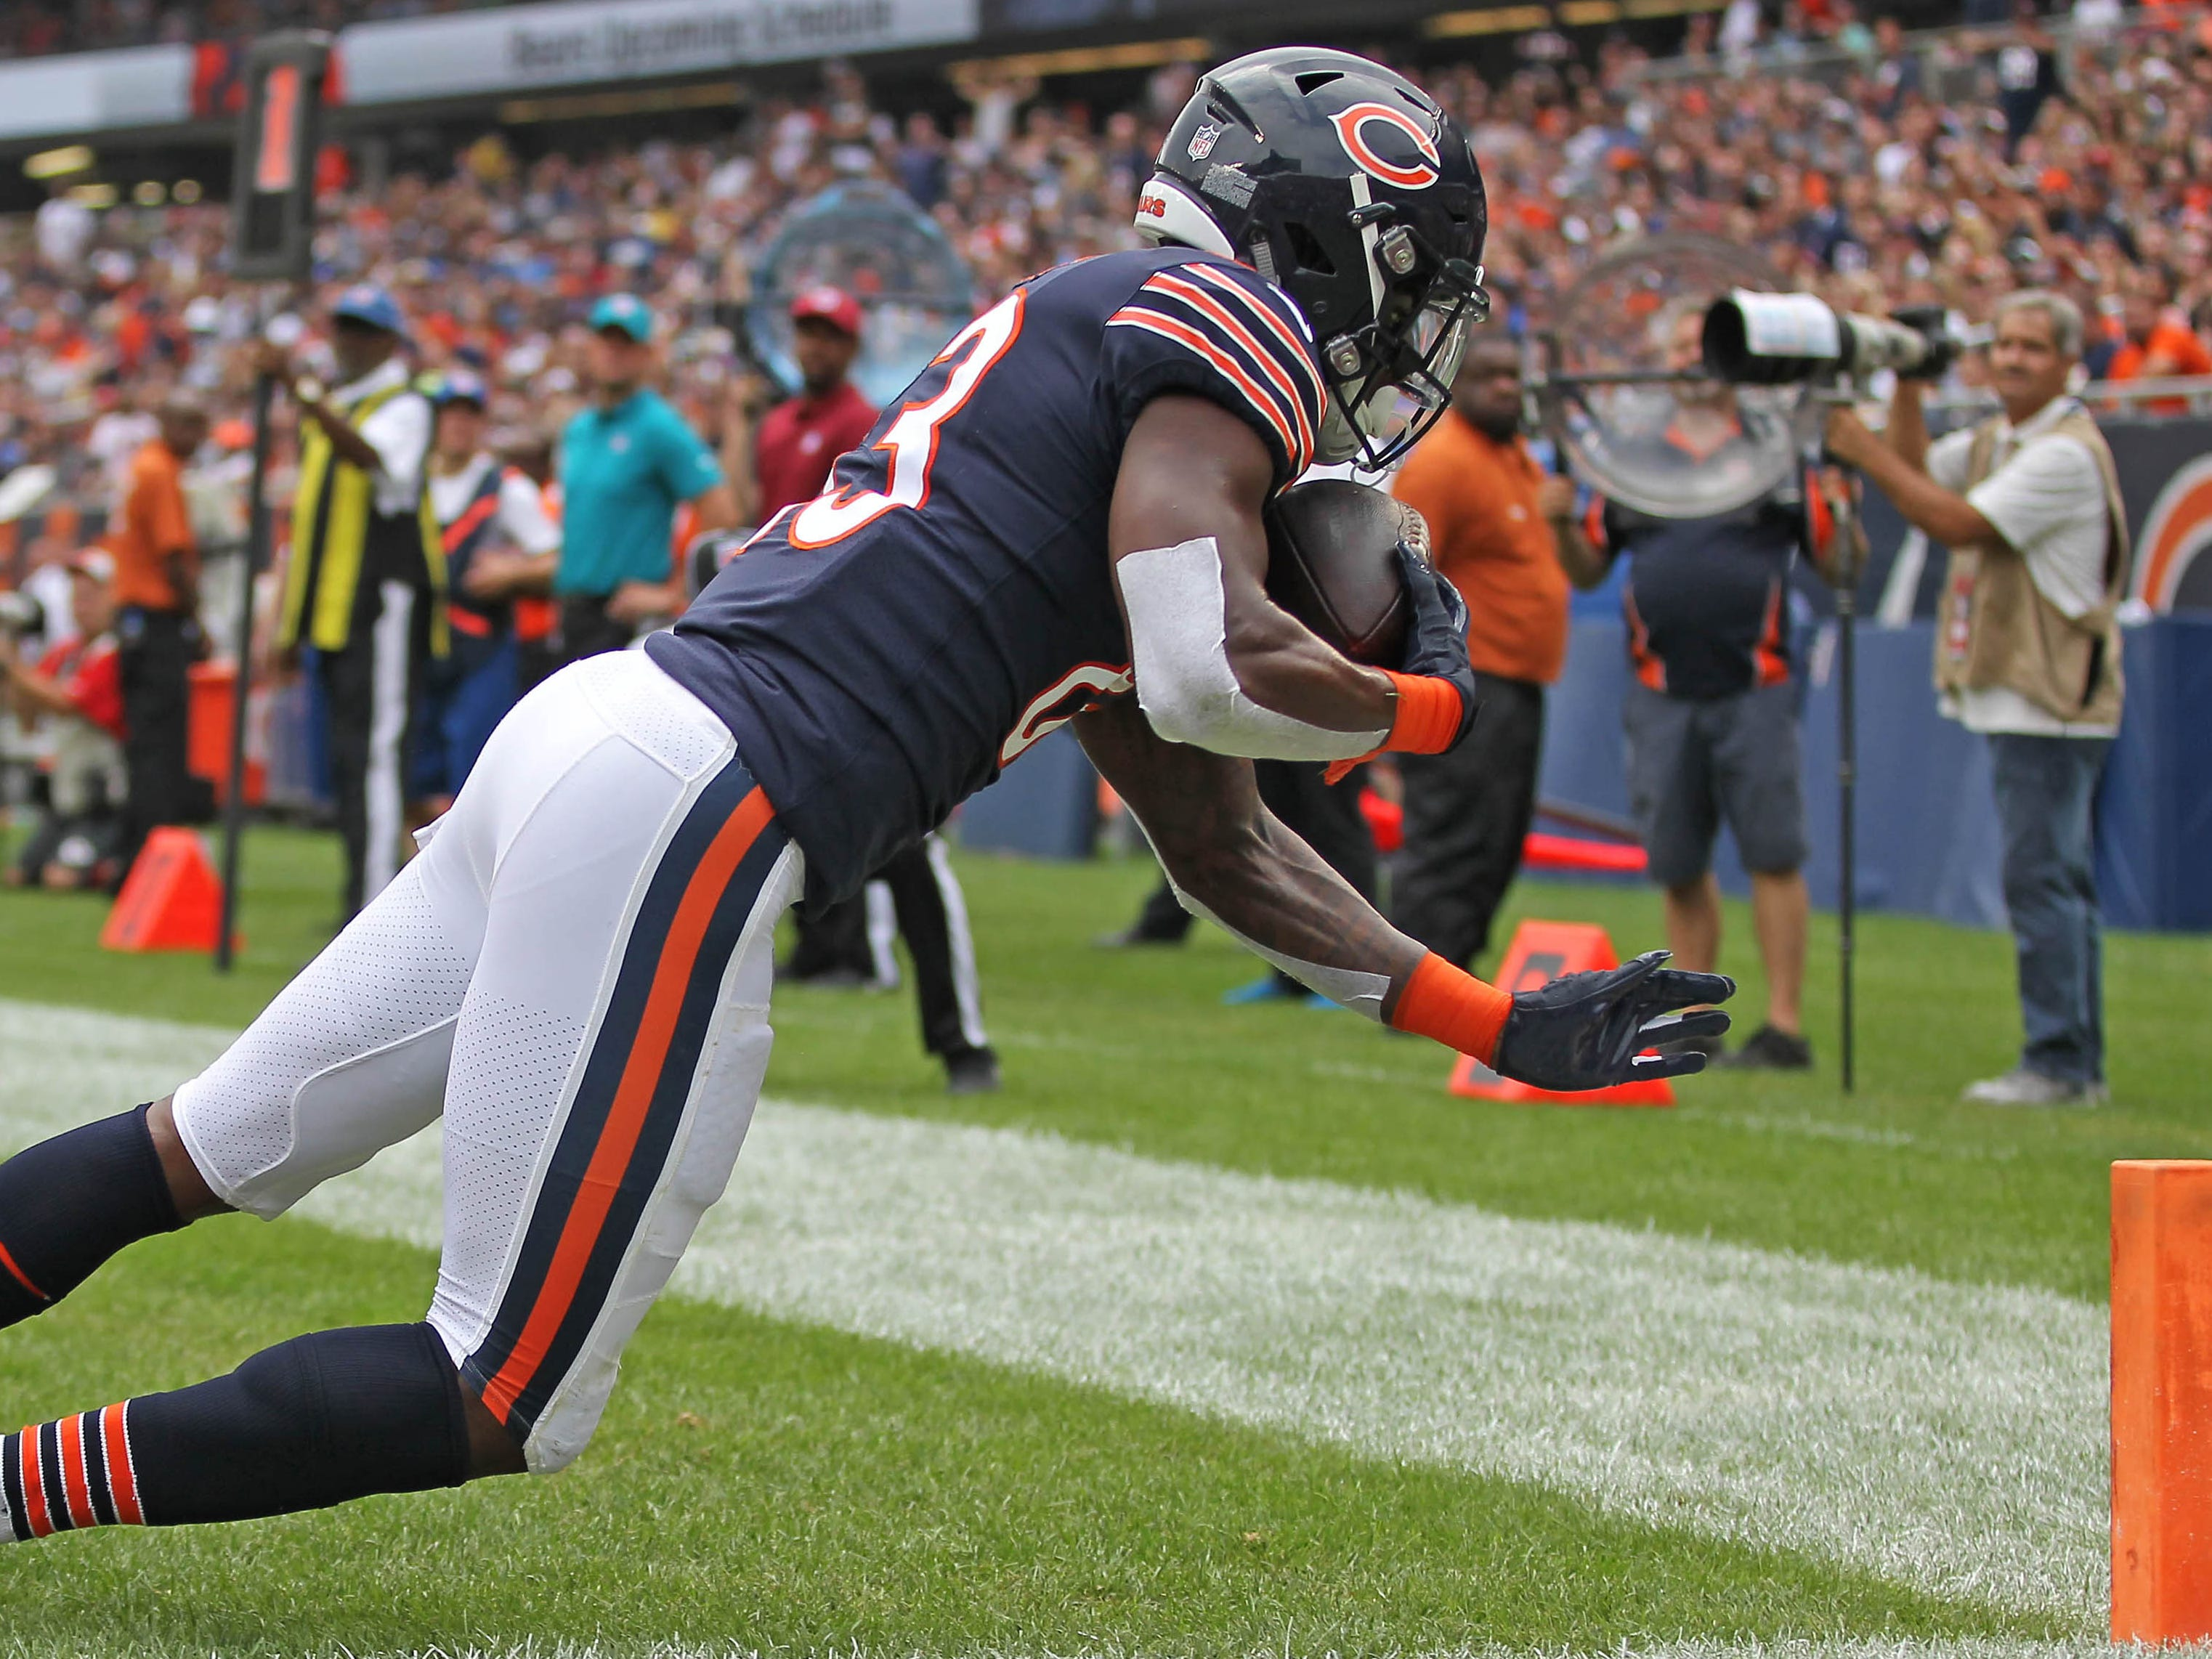 Chicago Bears wide receiver Javon Wims catches a touchdown pass during the first half against the Kansas City Chiefs.